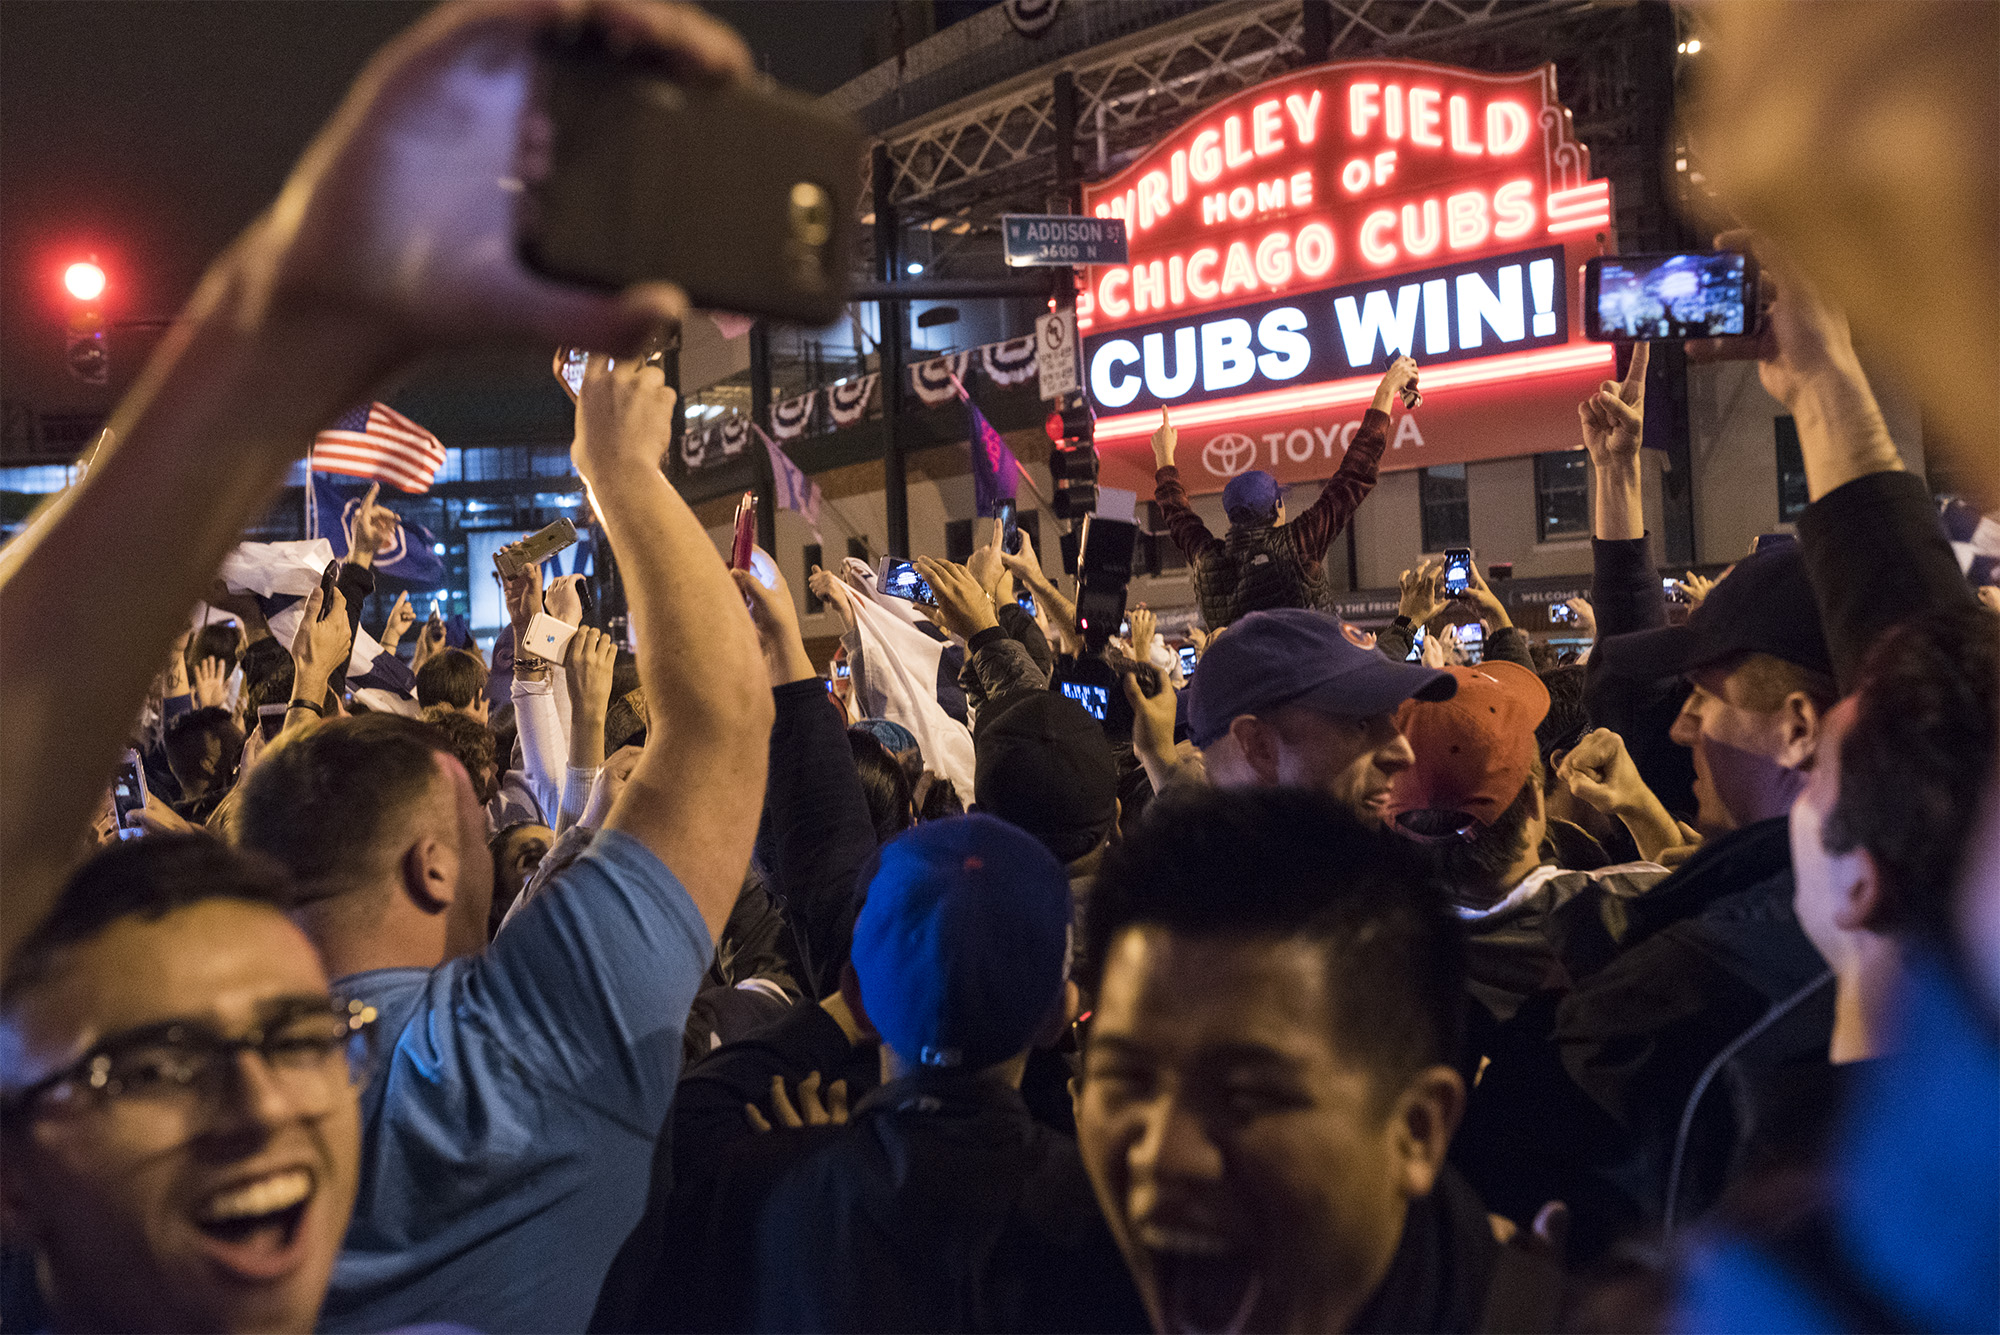 The Chicago Cubs break the curse winning the 2016 World Series during Game 7, which is the team's first win since 1908. Fans celebrated in Wrigleyville and across Chicago on Nov 2th.